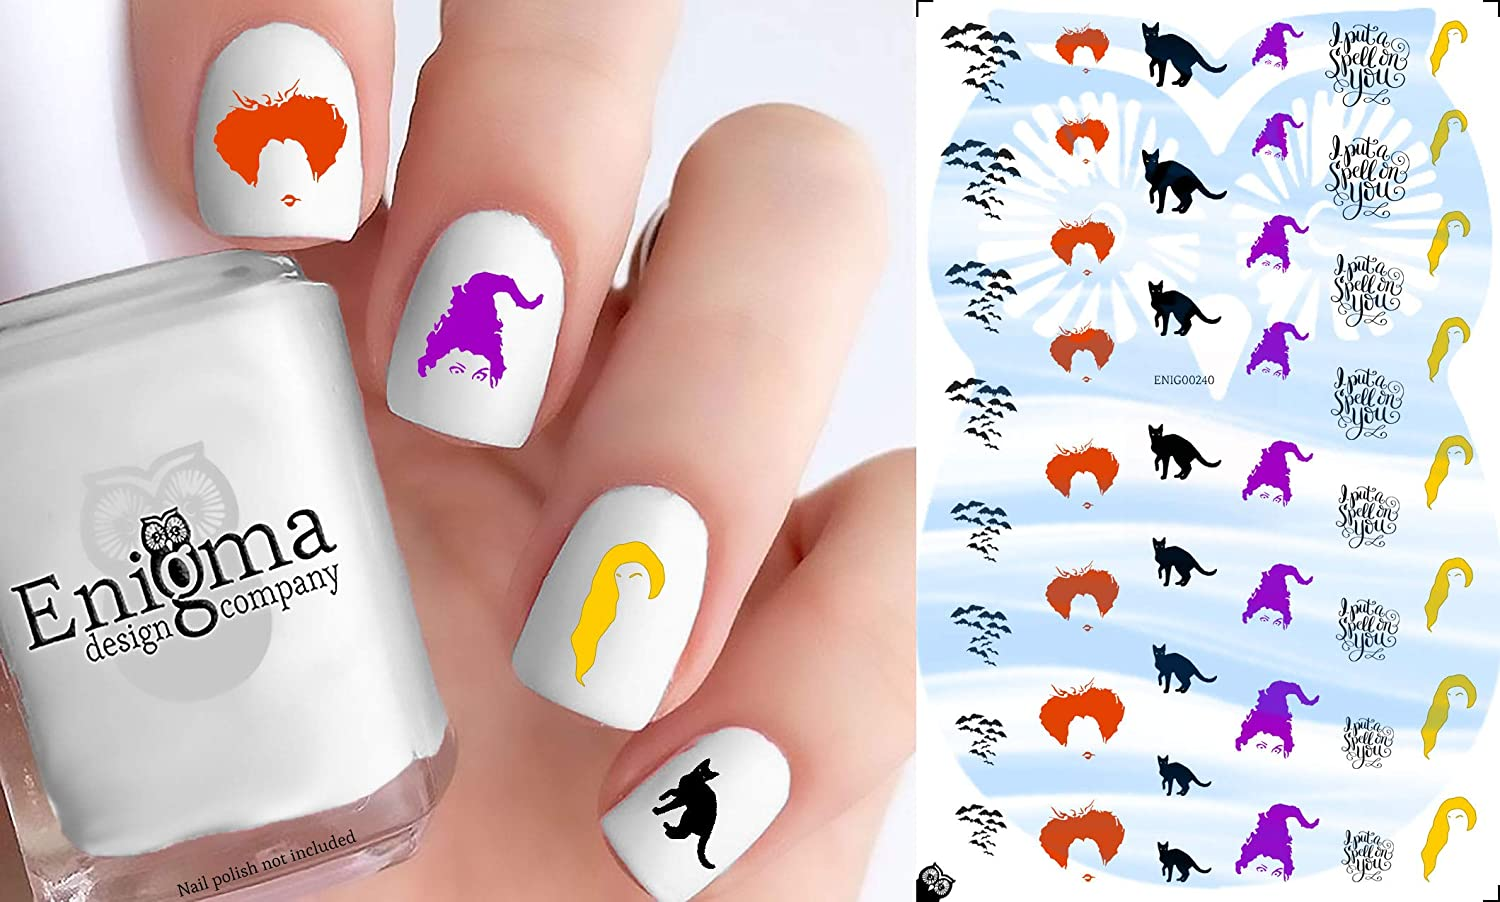 Hocus Pocus Nail Decals (Set of 48 | Clear Water-slide) Enigma Design Company ENIG00241